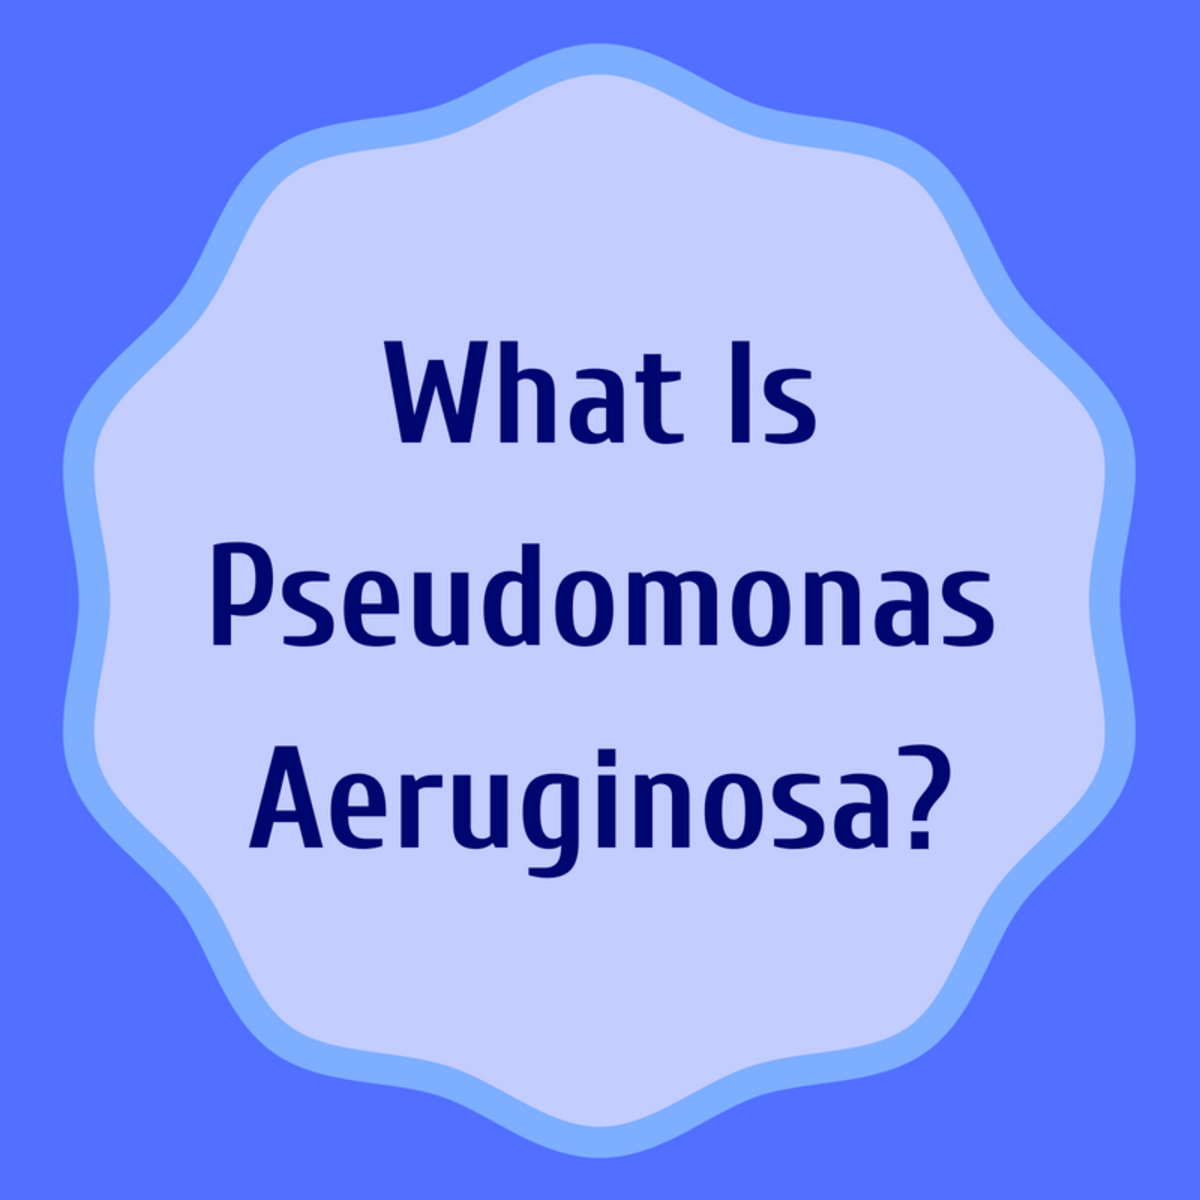 What Is a Pseudomonas Aeruginosa Infection Like?